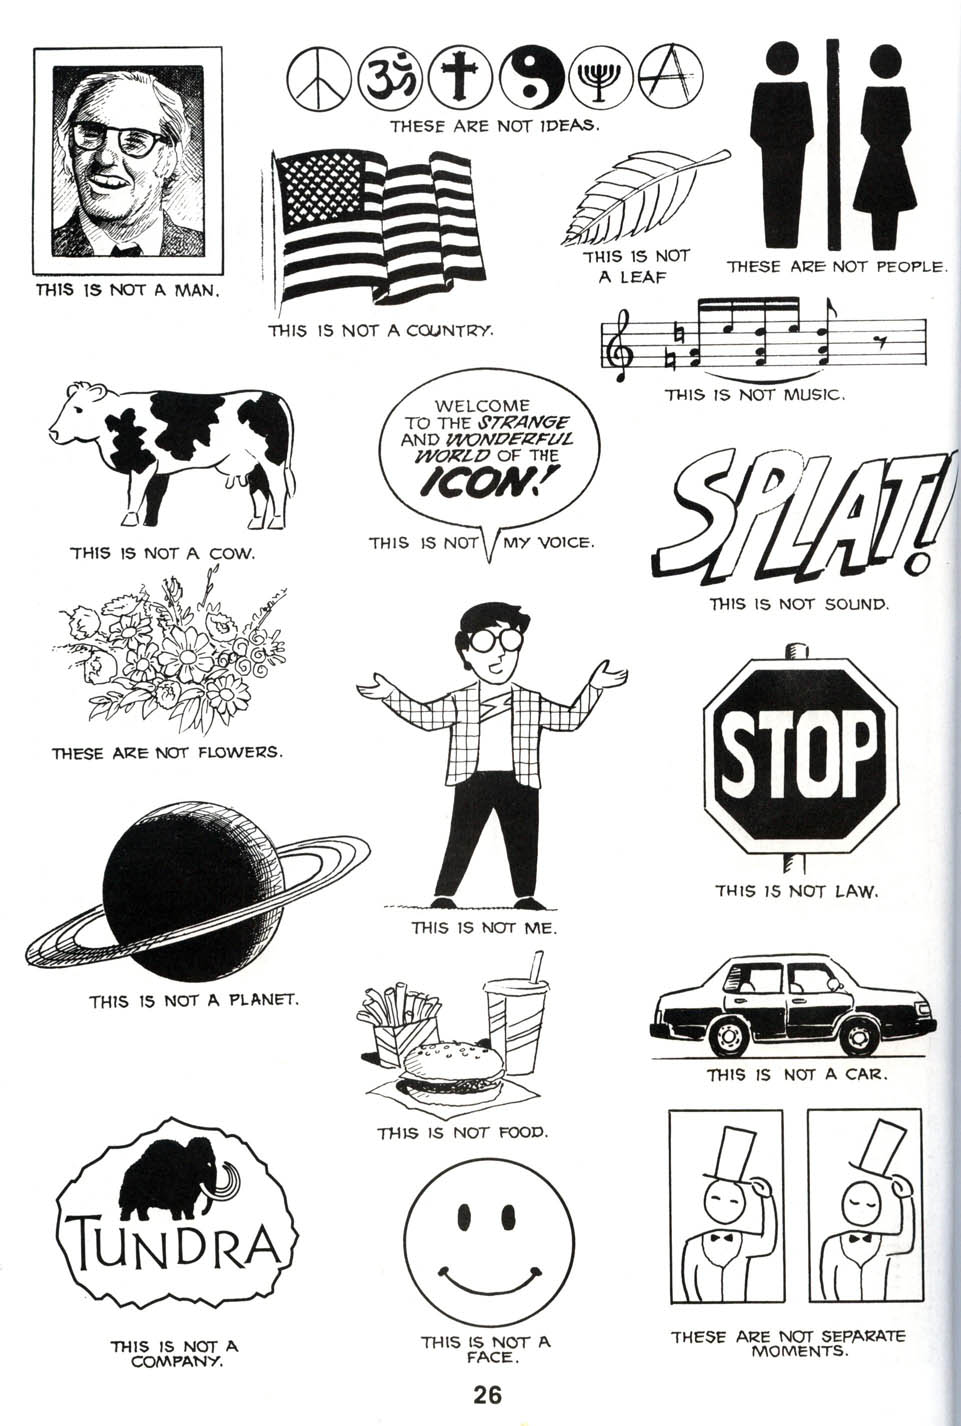 comics mccloud Summary & study guide understanding comics by scott mccloud jan 26, 2011 by bookragscom kindle edition $499 $ 4 99 get it today, jul 7 5 out of 5 stars 1.